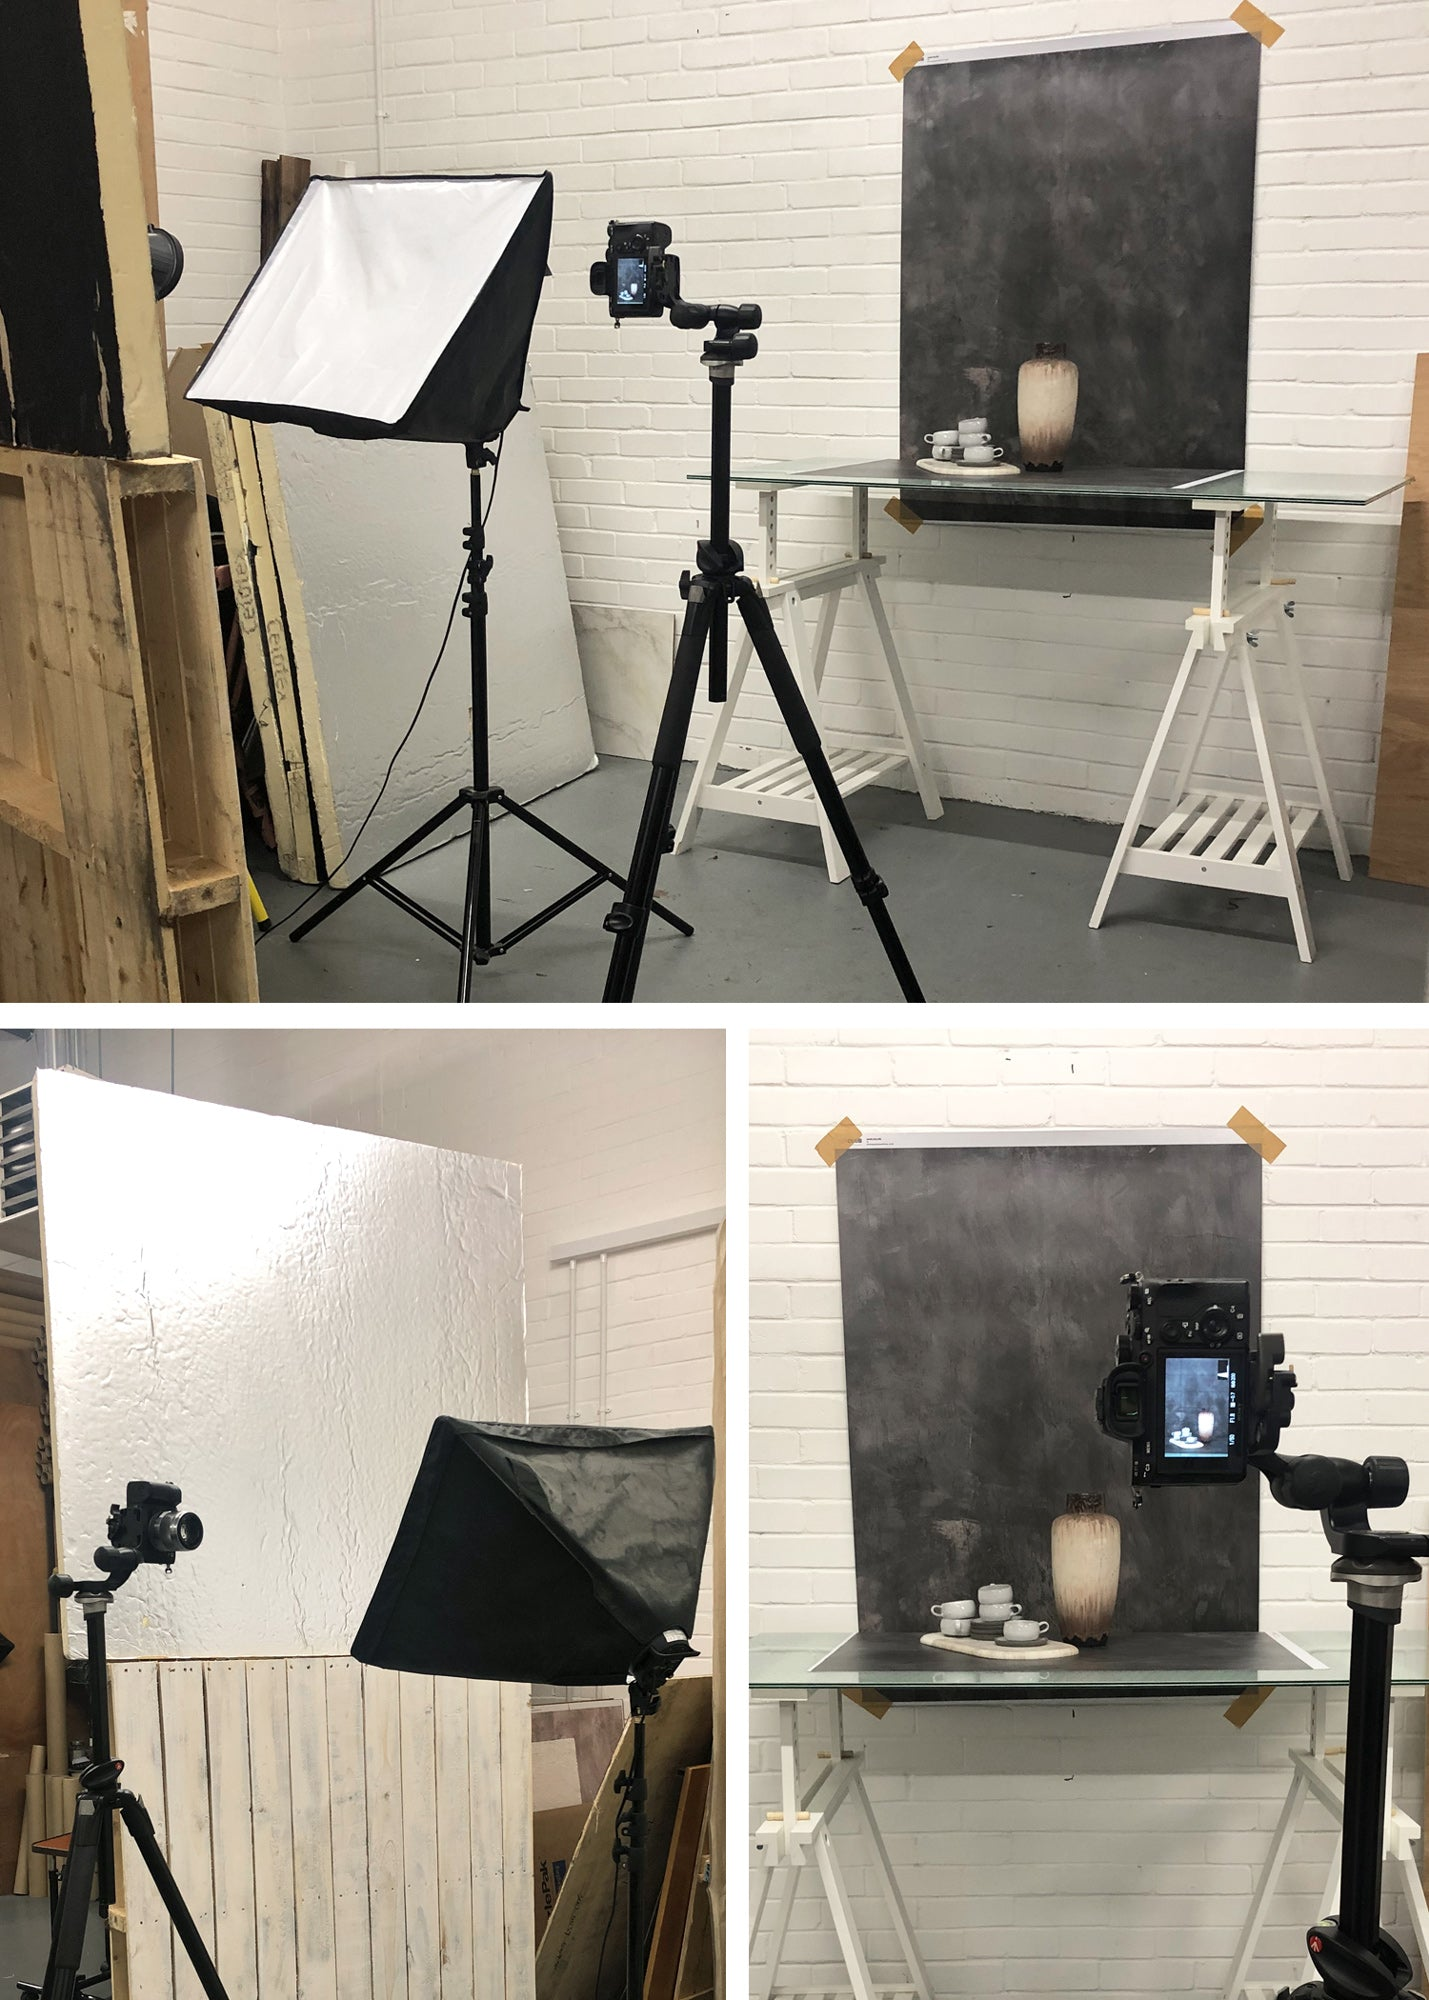 Indirect lighting for dark vinyl food and product photography